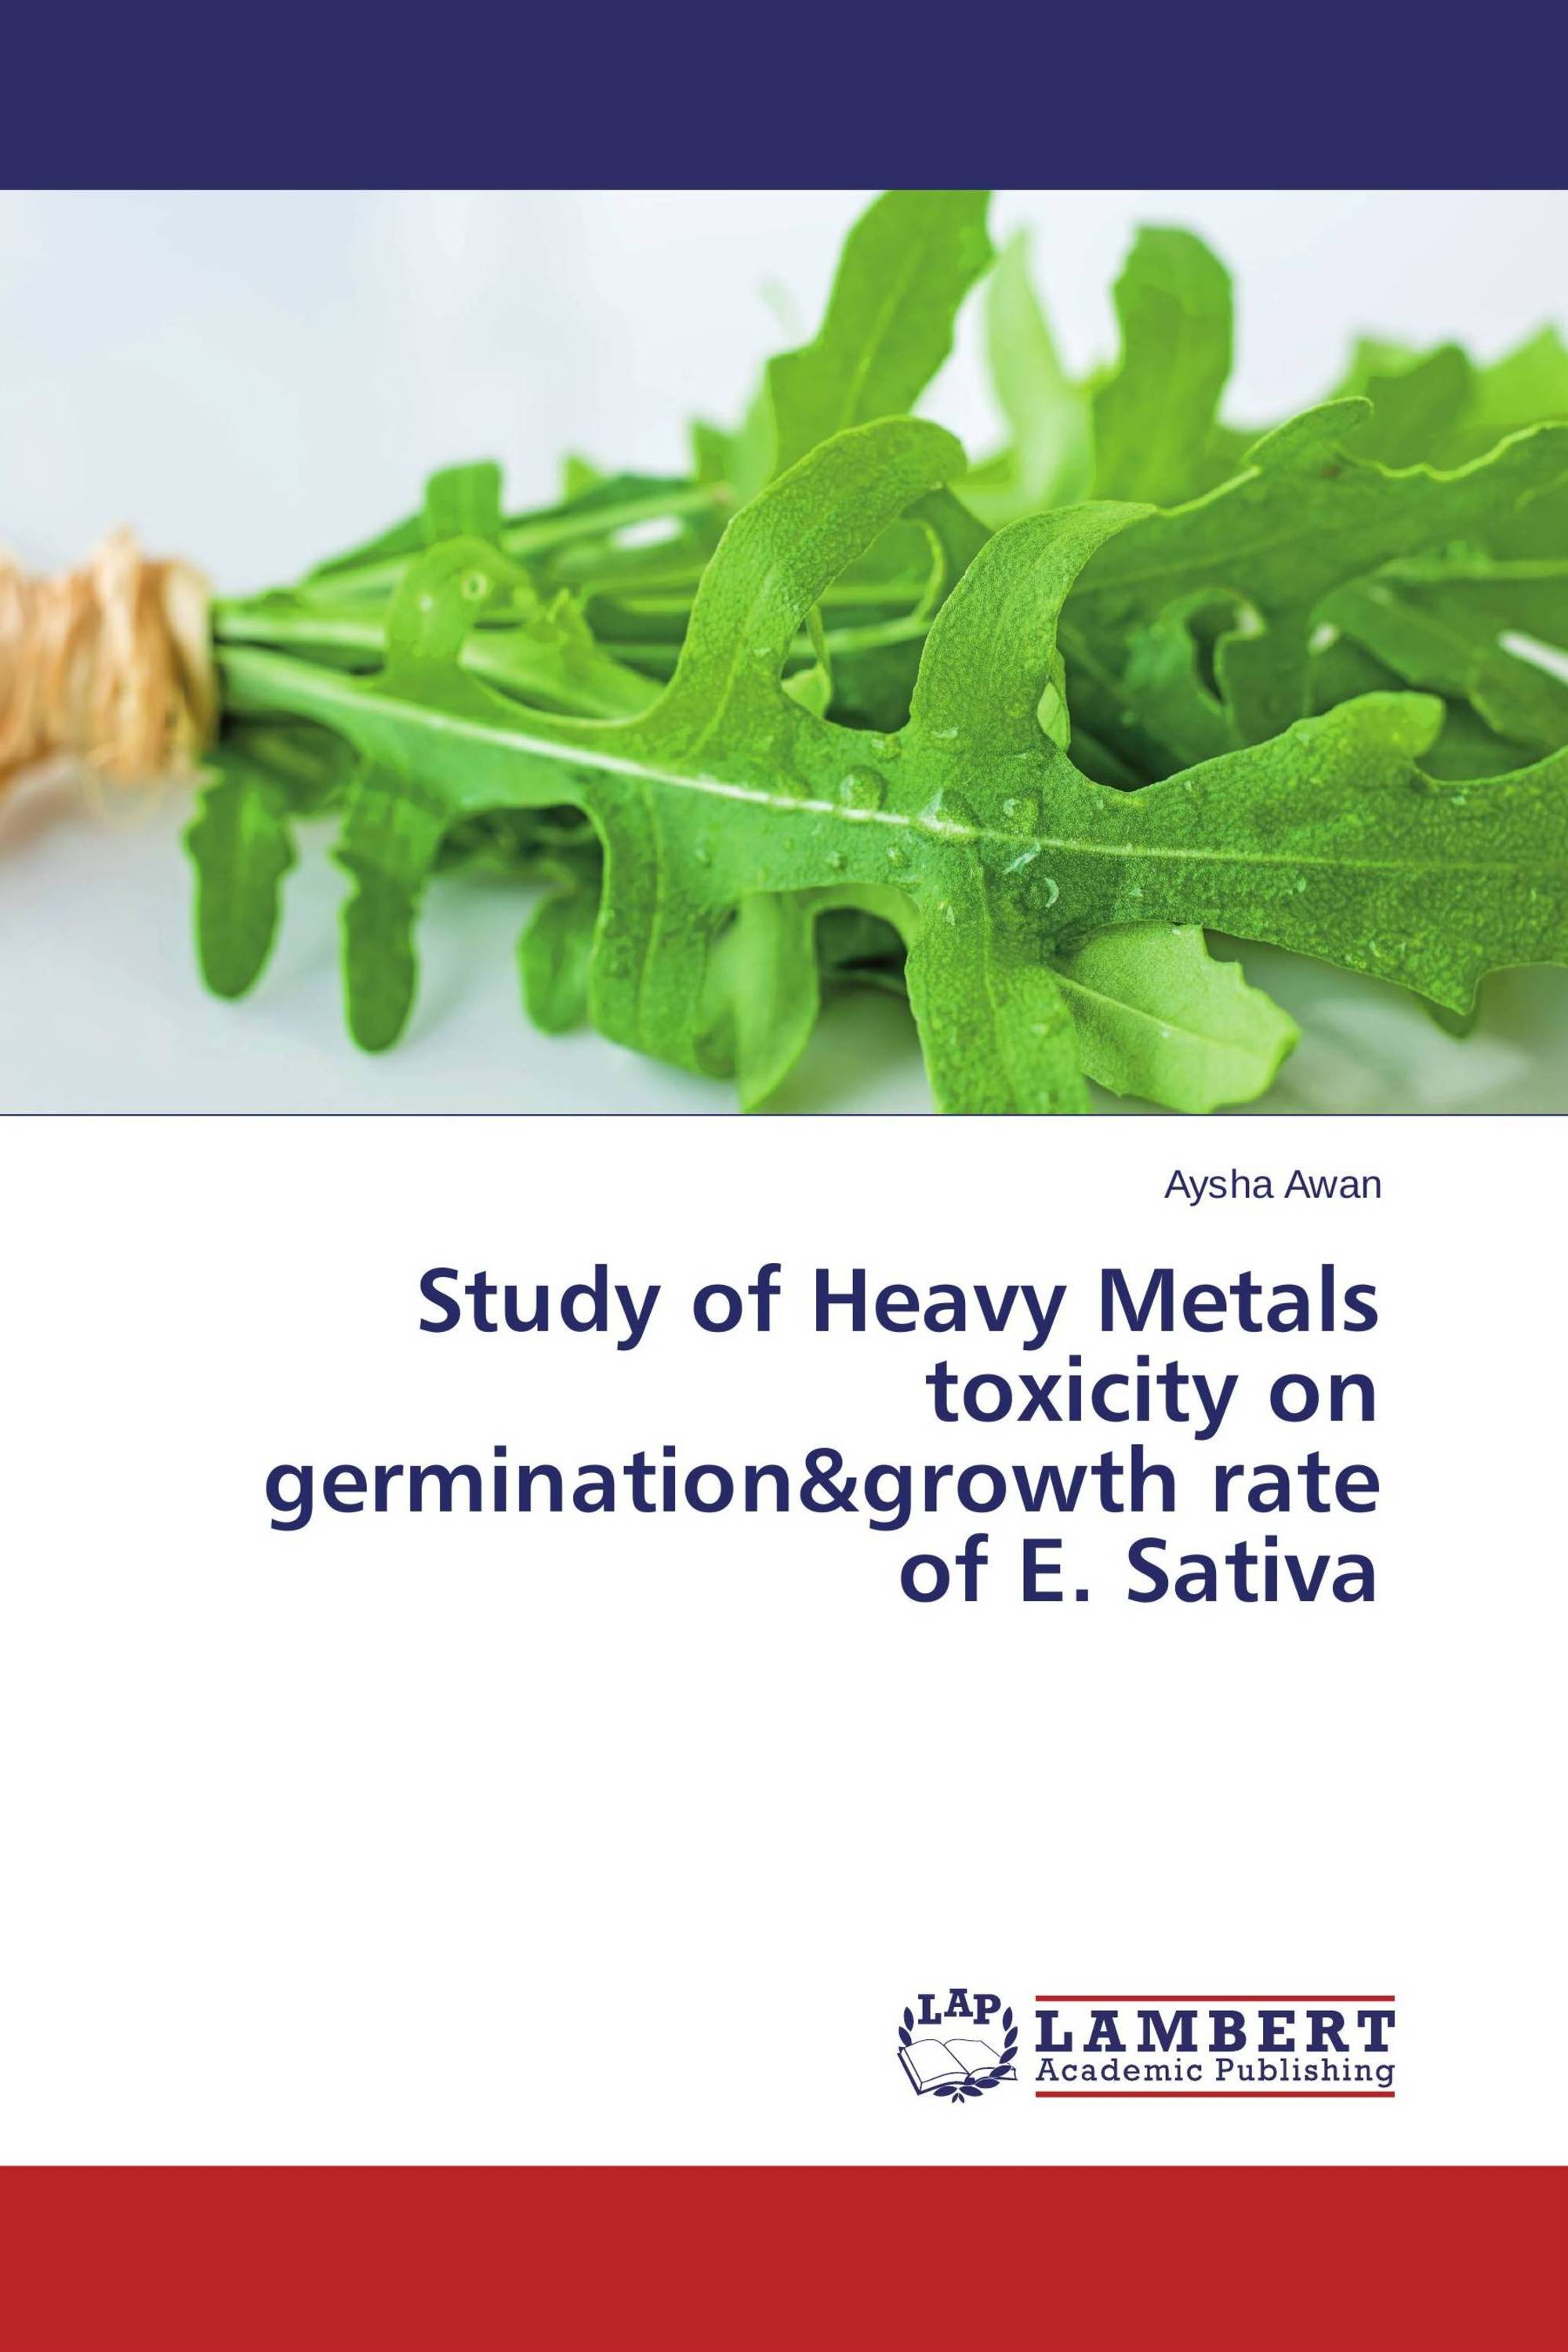 Study of Heavy Metals toxicity on germination&growth rate of E